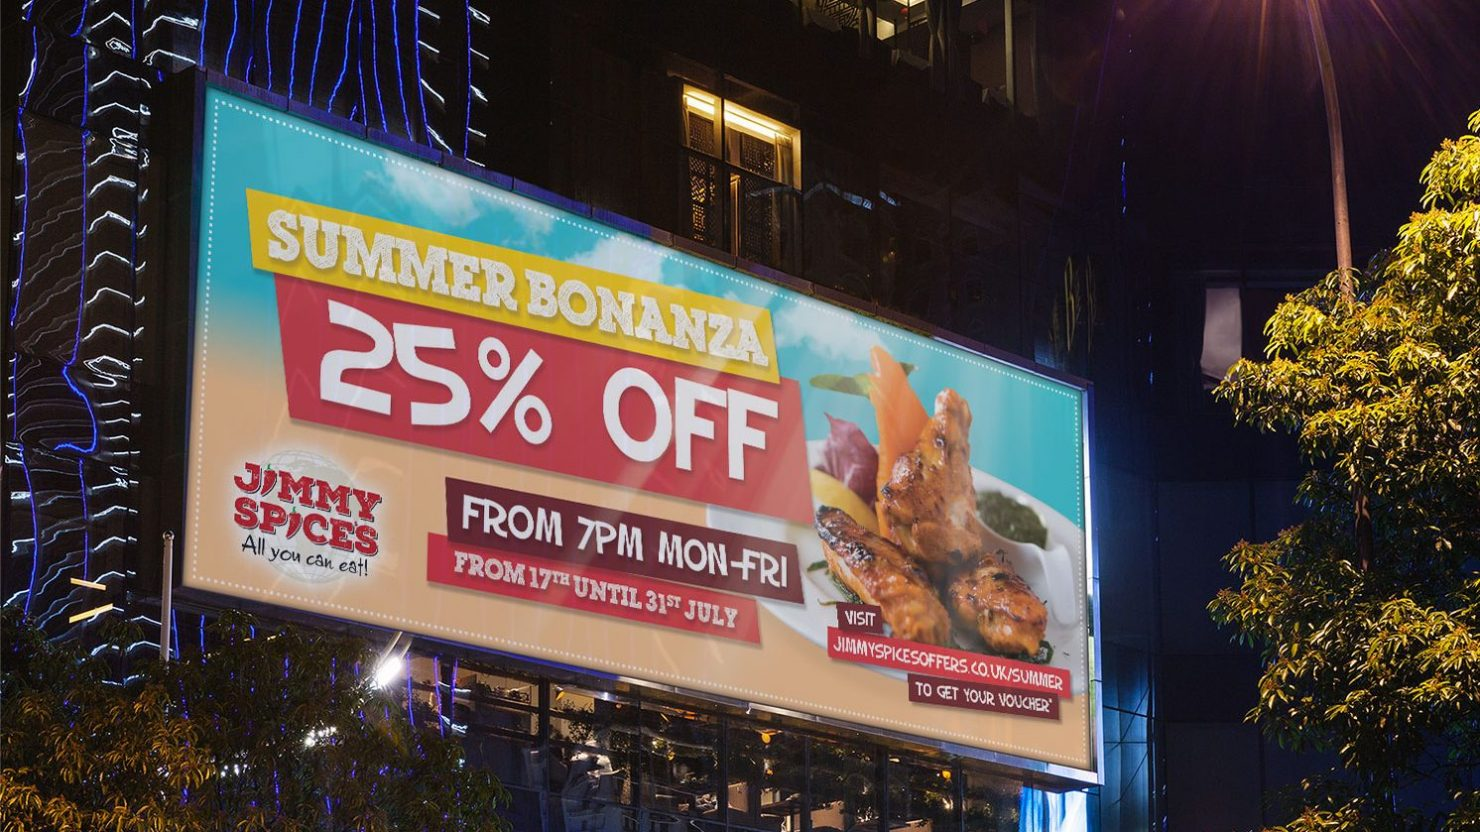 Large backlit city billboard showing promotional offer for Birmingham buffet restaurant Jimmy Spices